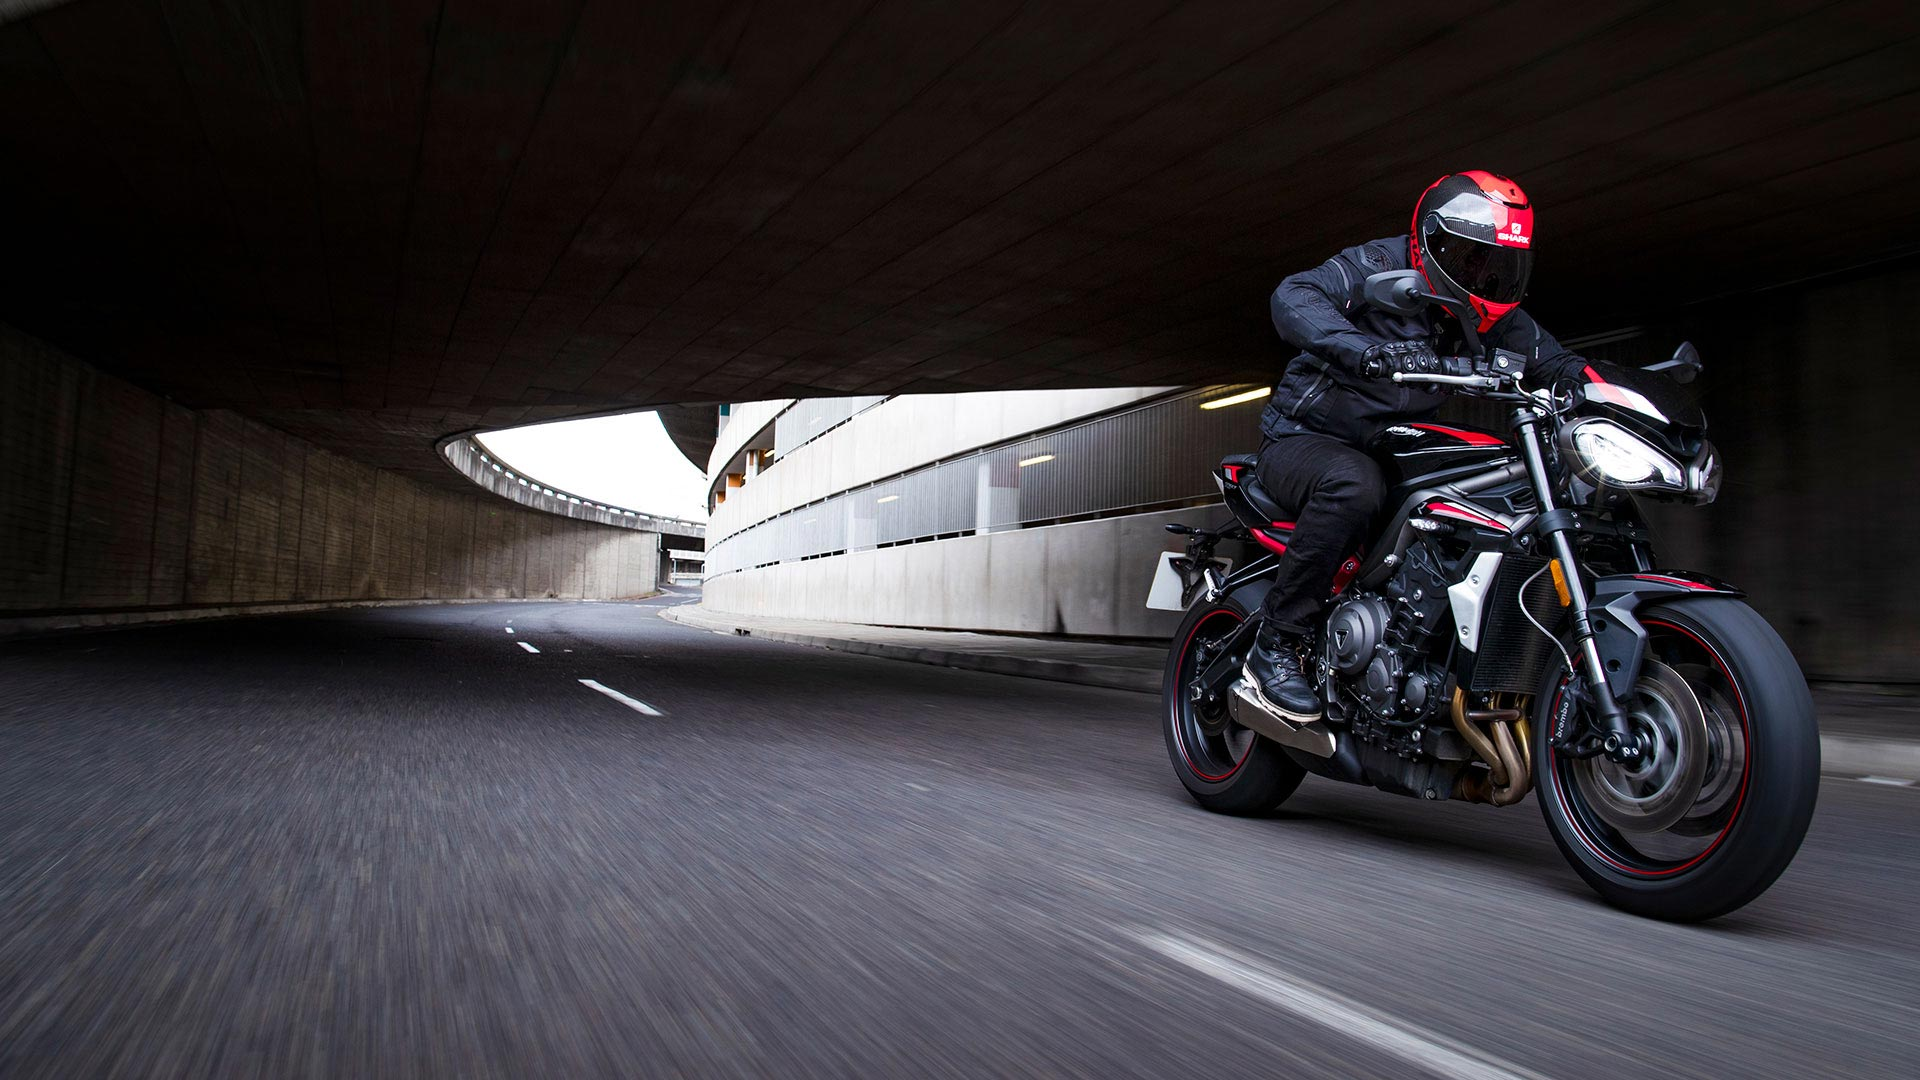 Street-Triple-R-Variant-Page---Gallery-2-1920x1080px